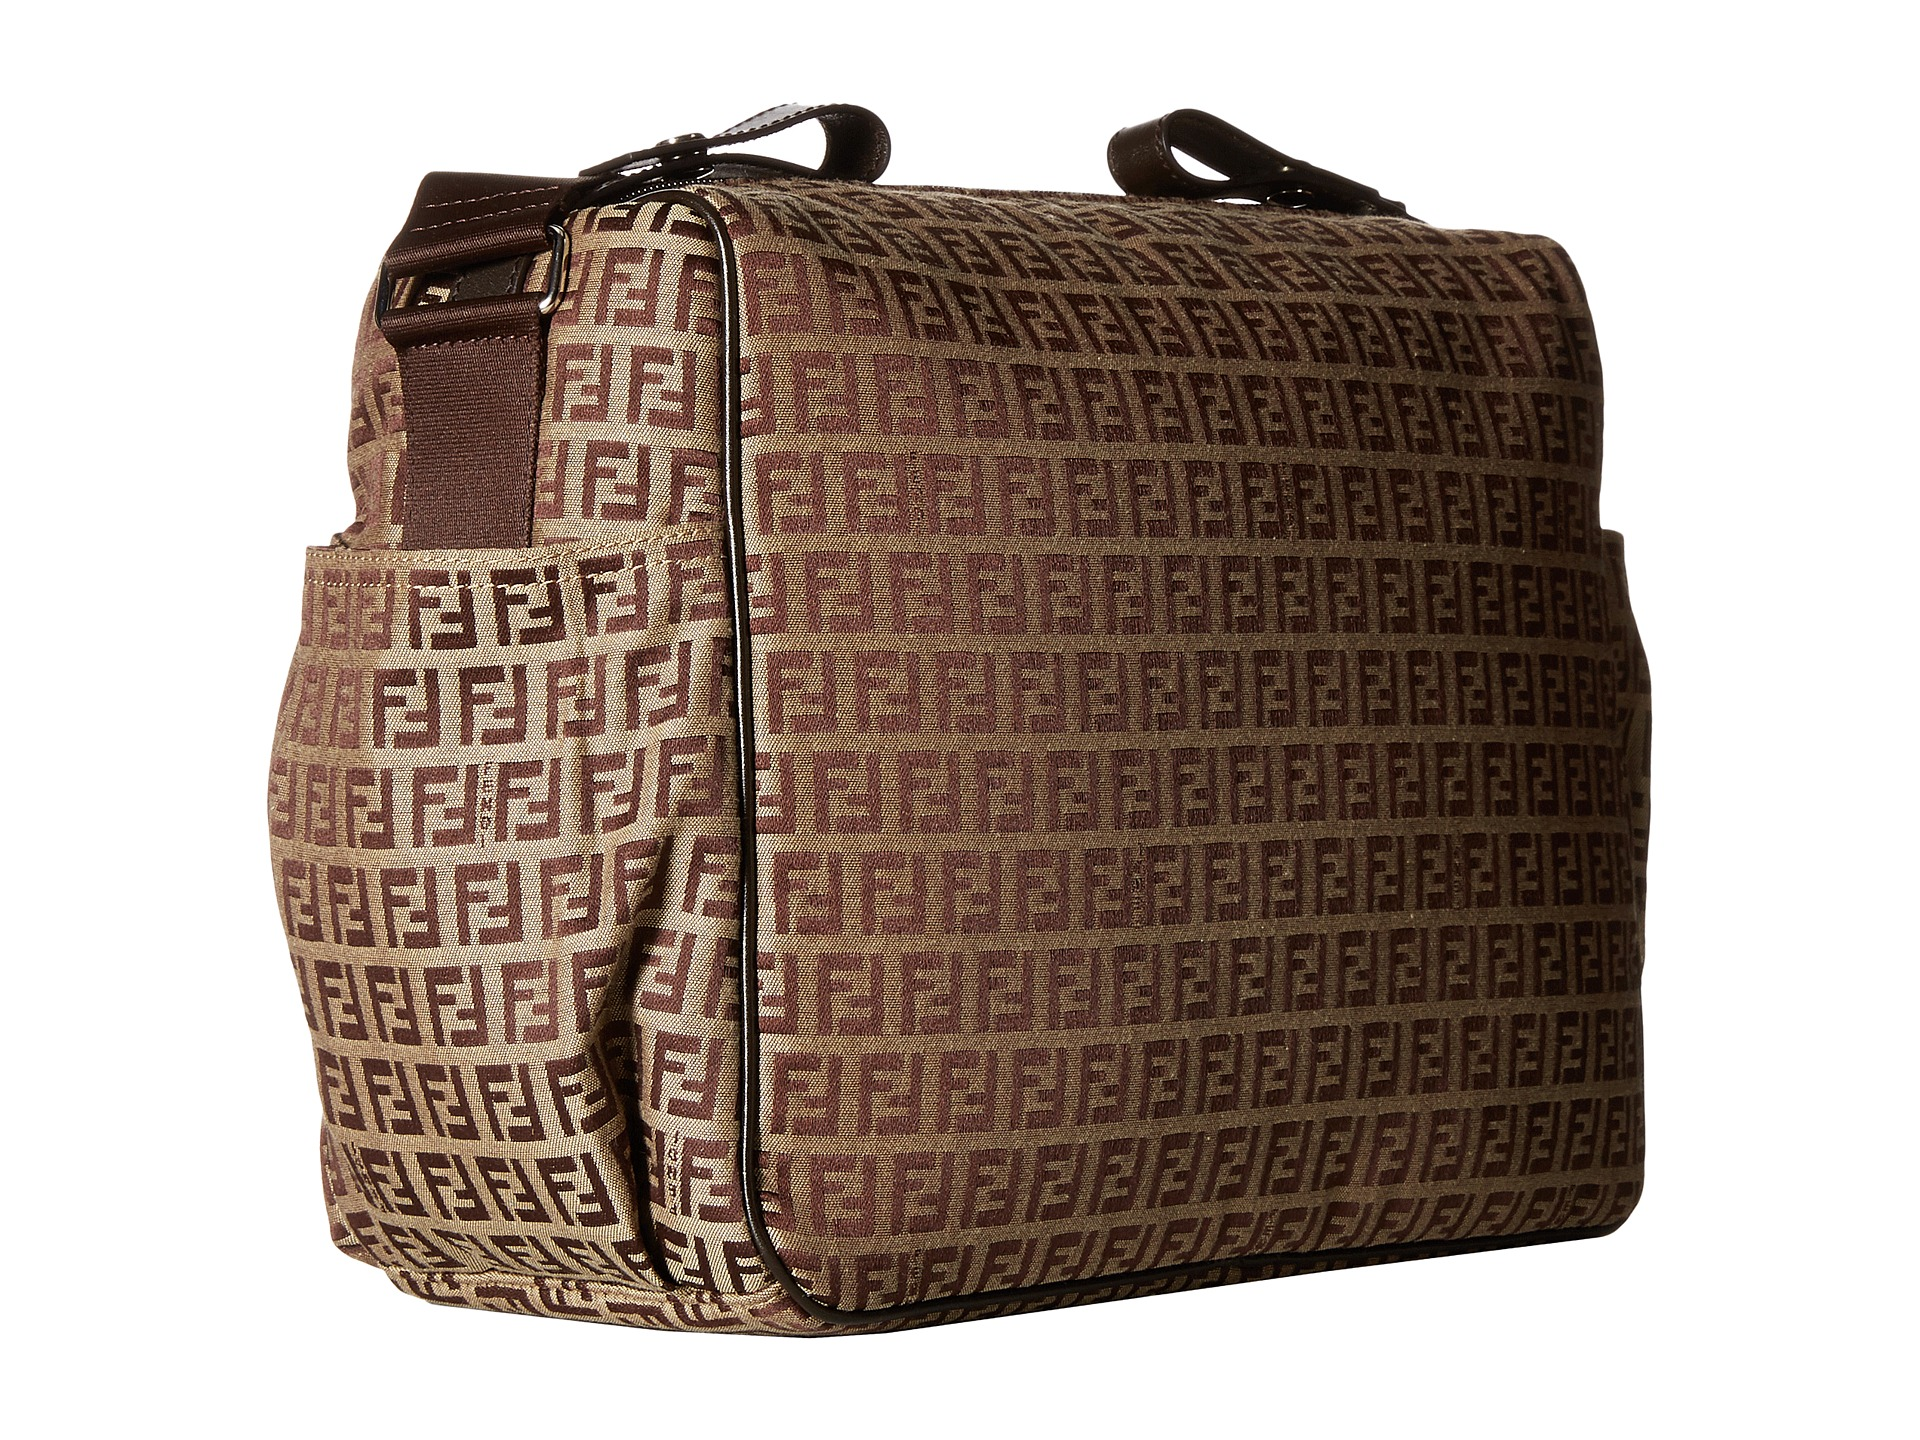 Kids Diaper Bag : Fendi kids all over diaper bag at luxury zappos